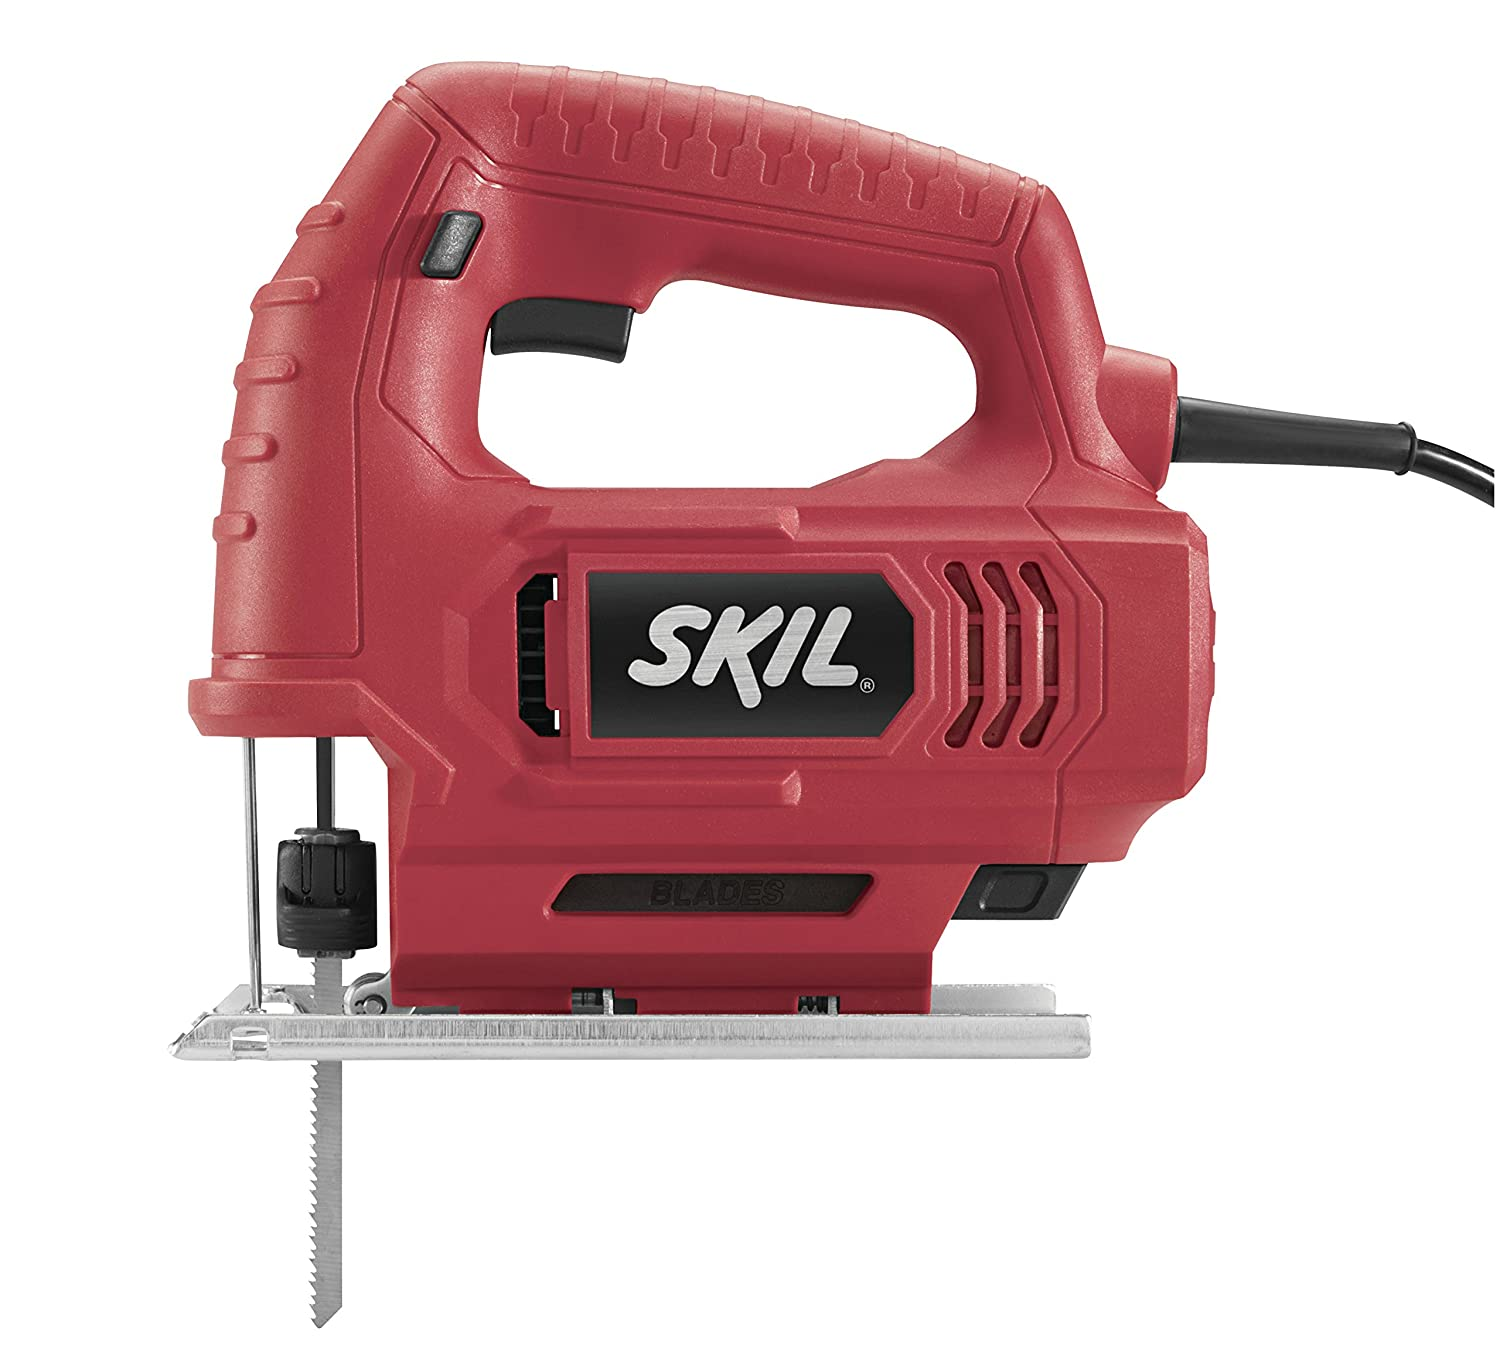 Skil 4295 01 45 amp variable speed jigsaw amazon greentooth Choice Image